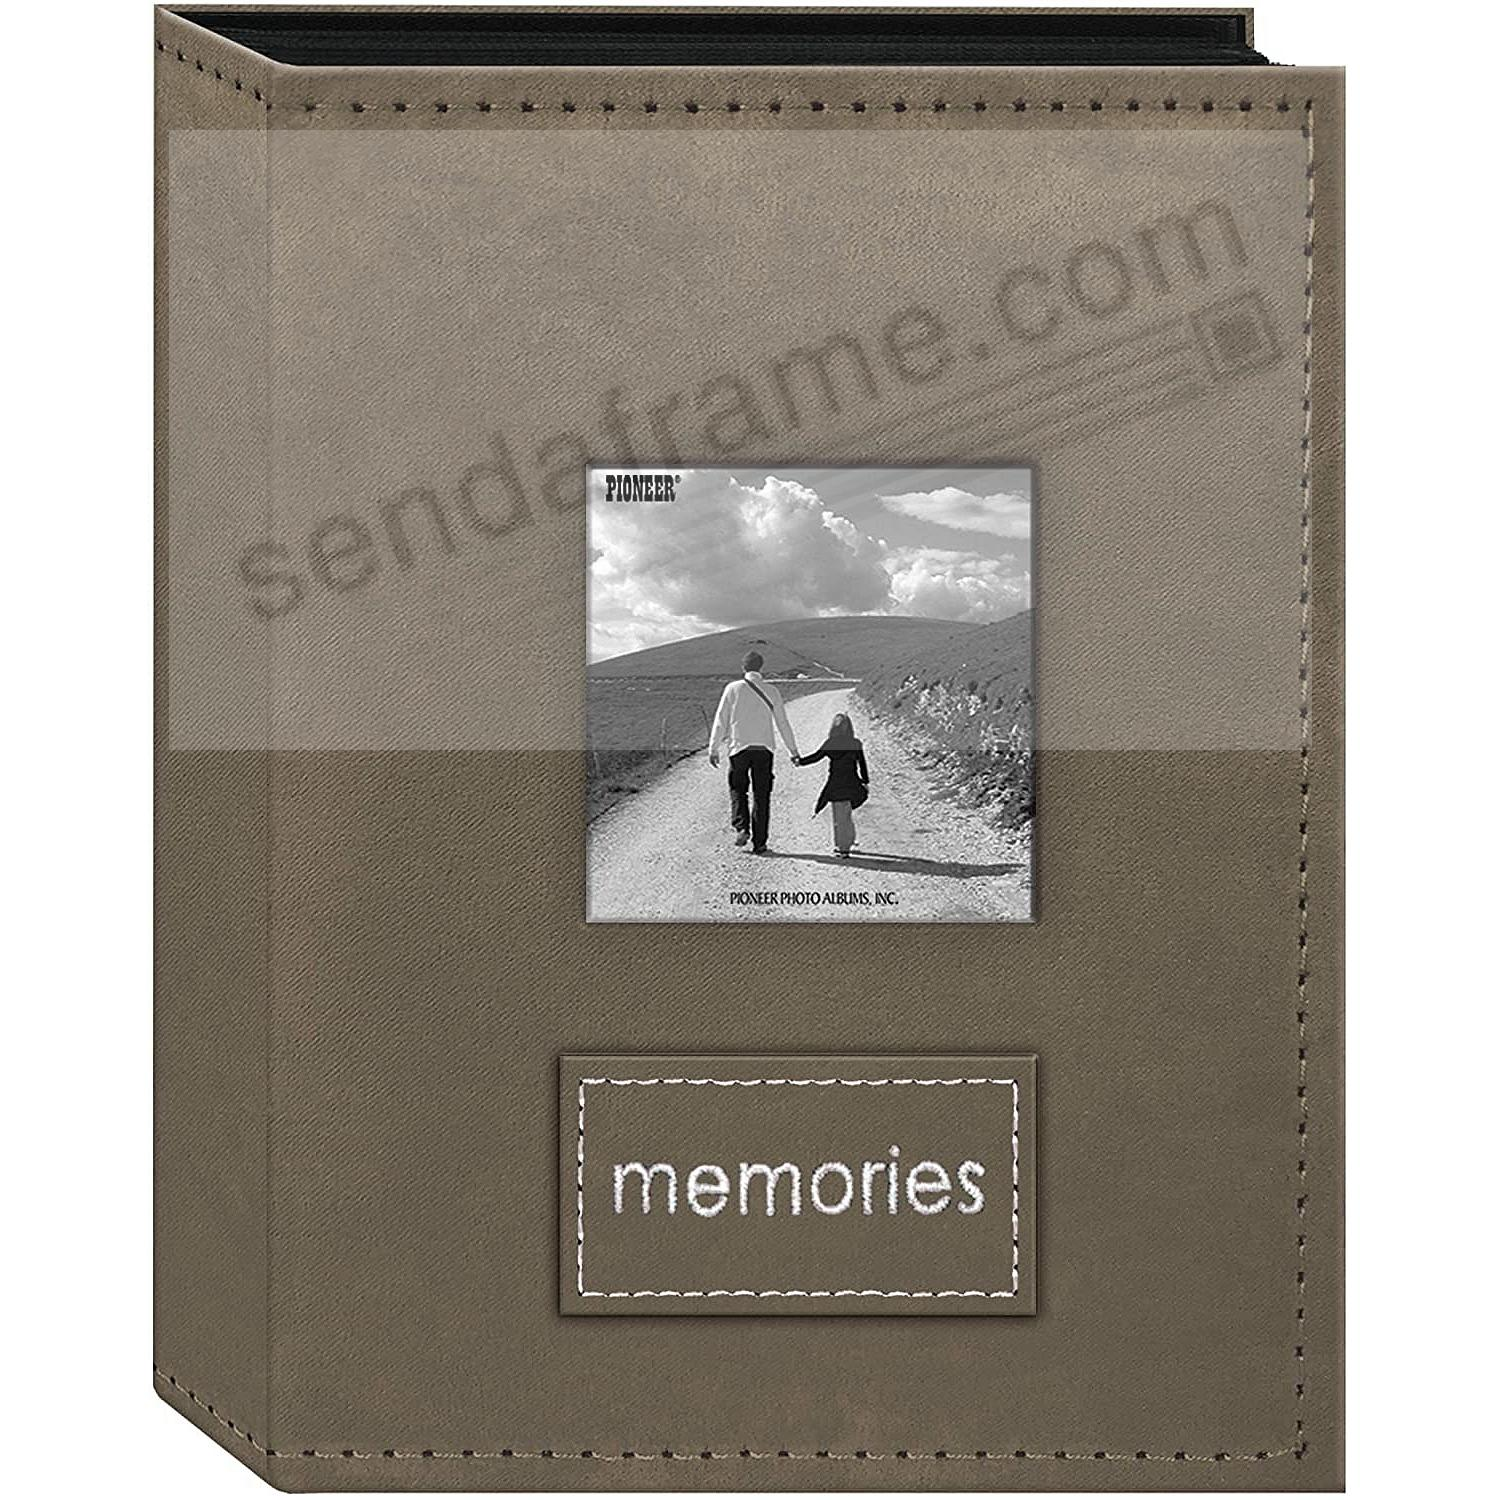 208 Pocket TAN Faux-Suede Frame Cover 4x6 Album with Embroidered Patch